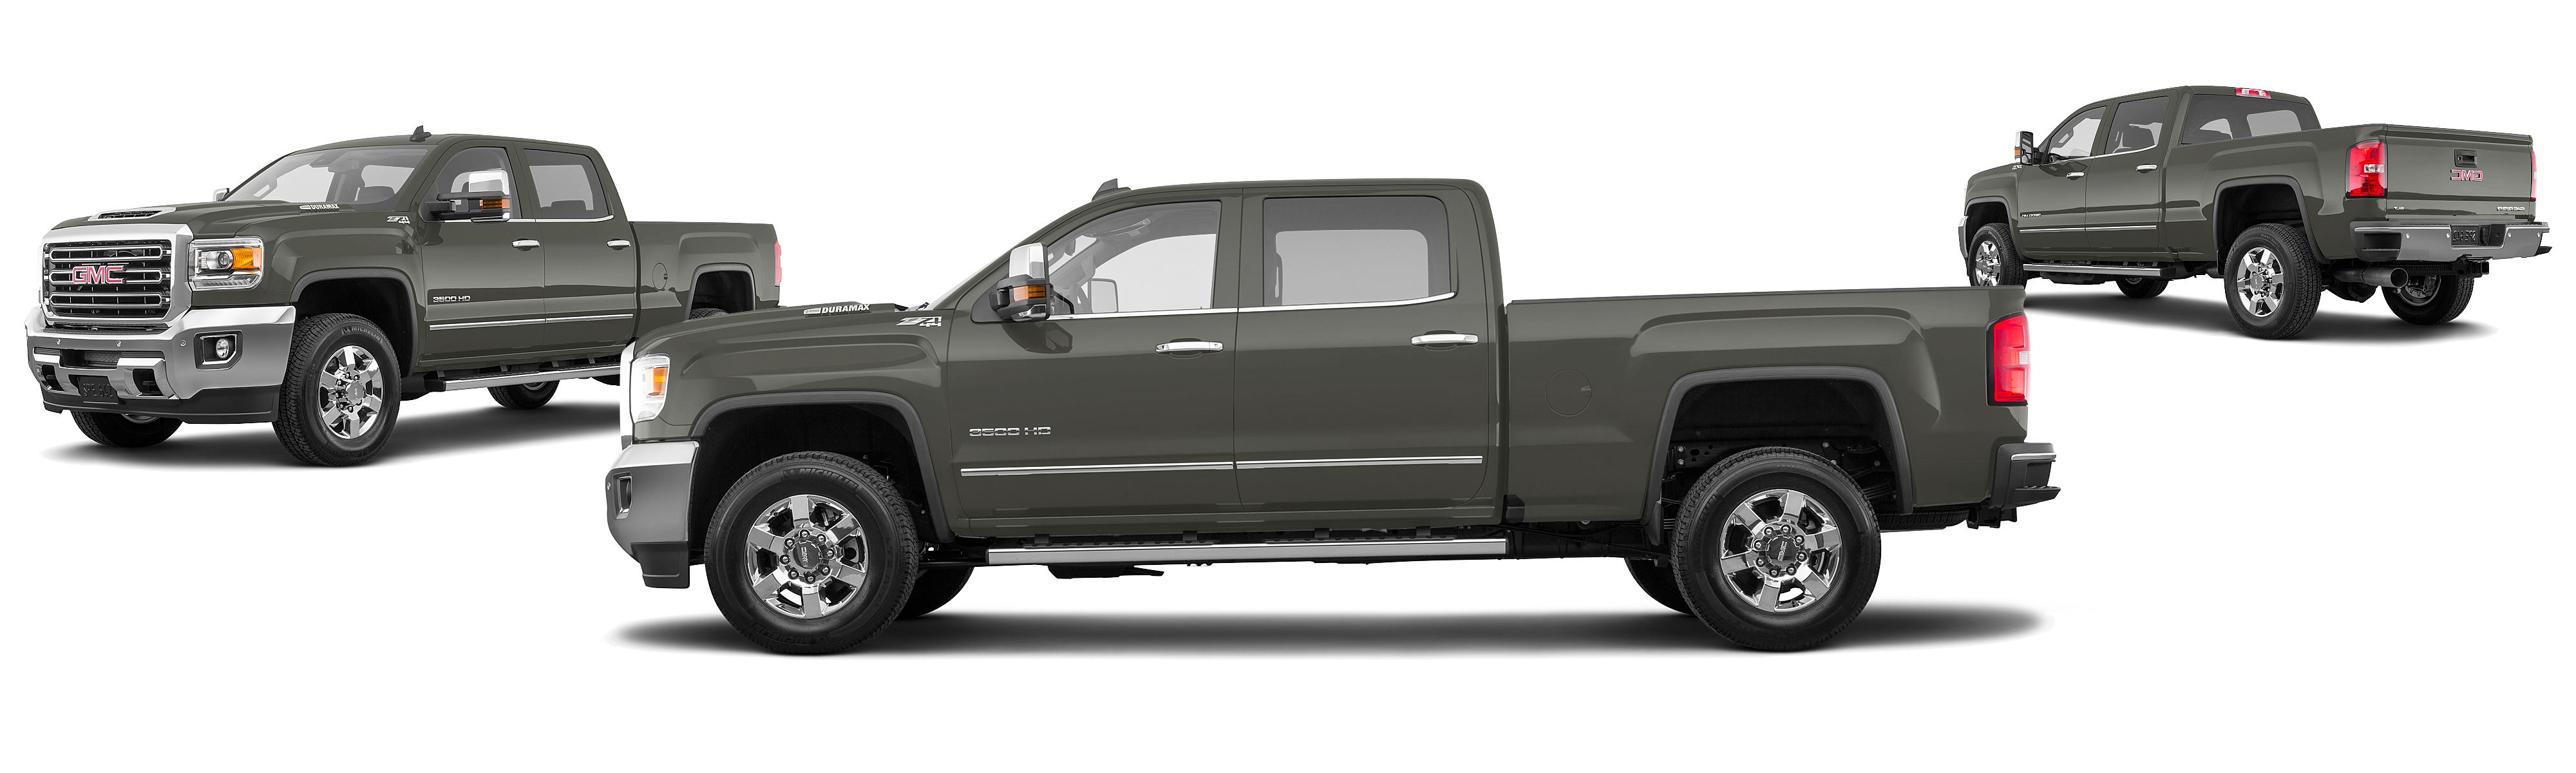 2017-gmc-sierra-3500hd-4x2-base-4dr-crew-cab-srw-mineral-metallic-composite-large Cool Review About 2011 Gmc 2500 Hd